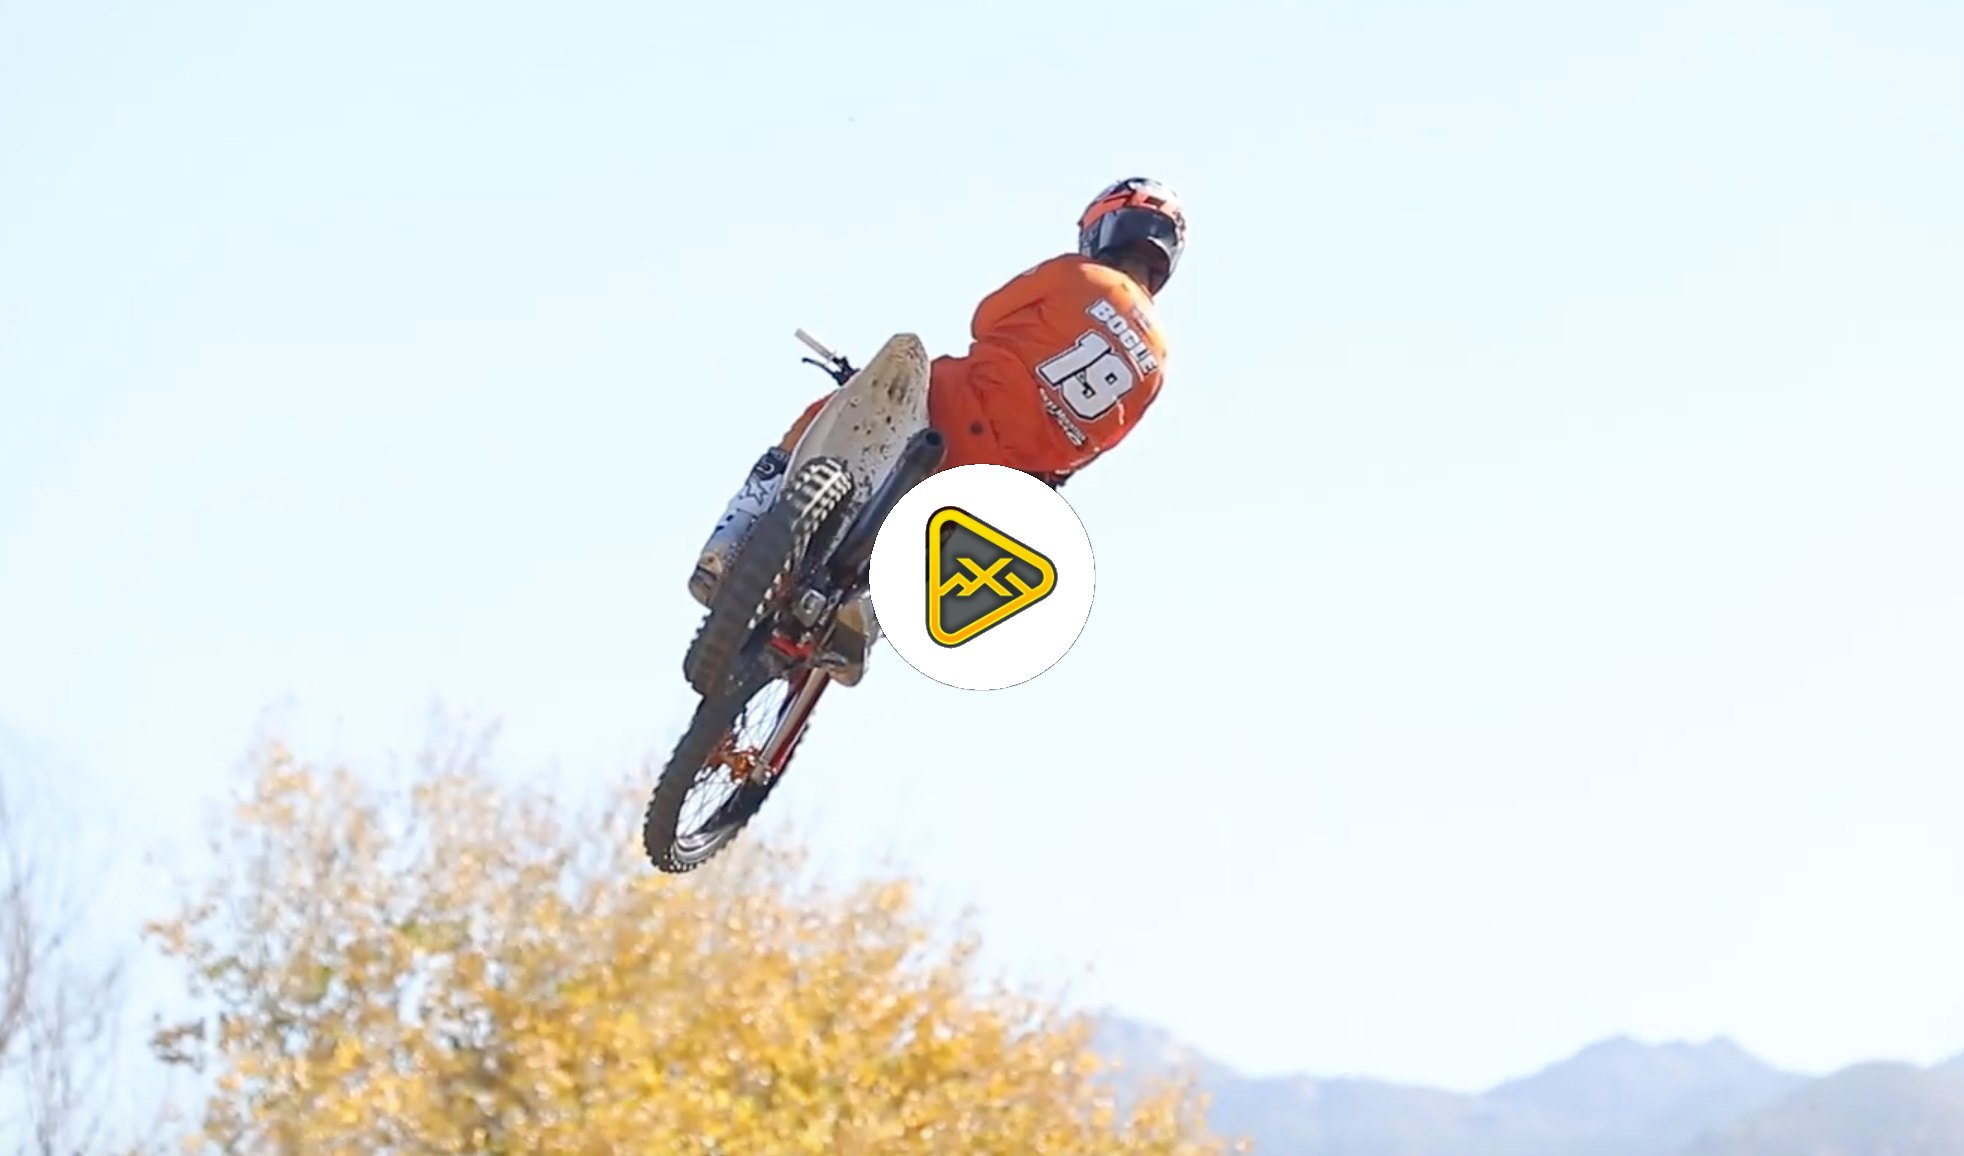 Justin Bogle – aka captain aka young no quit….